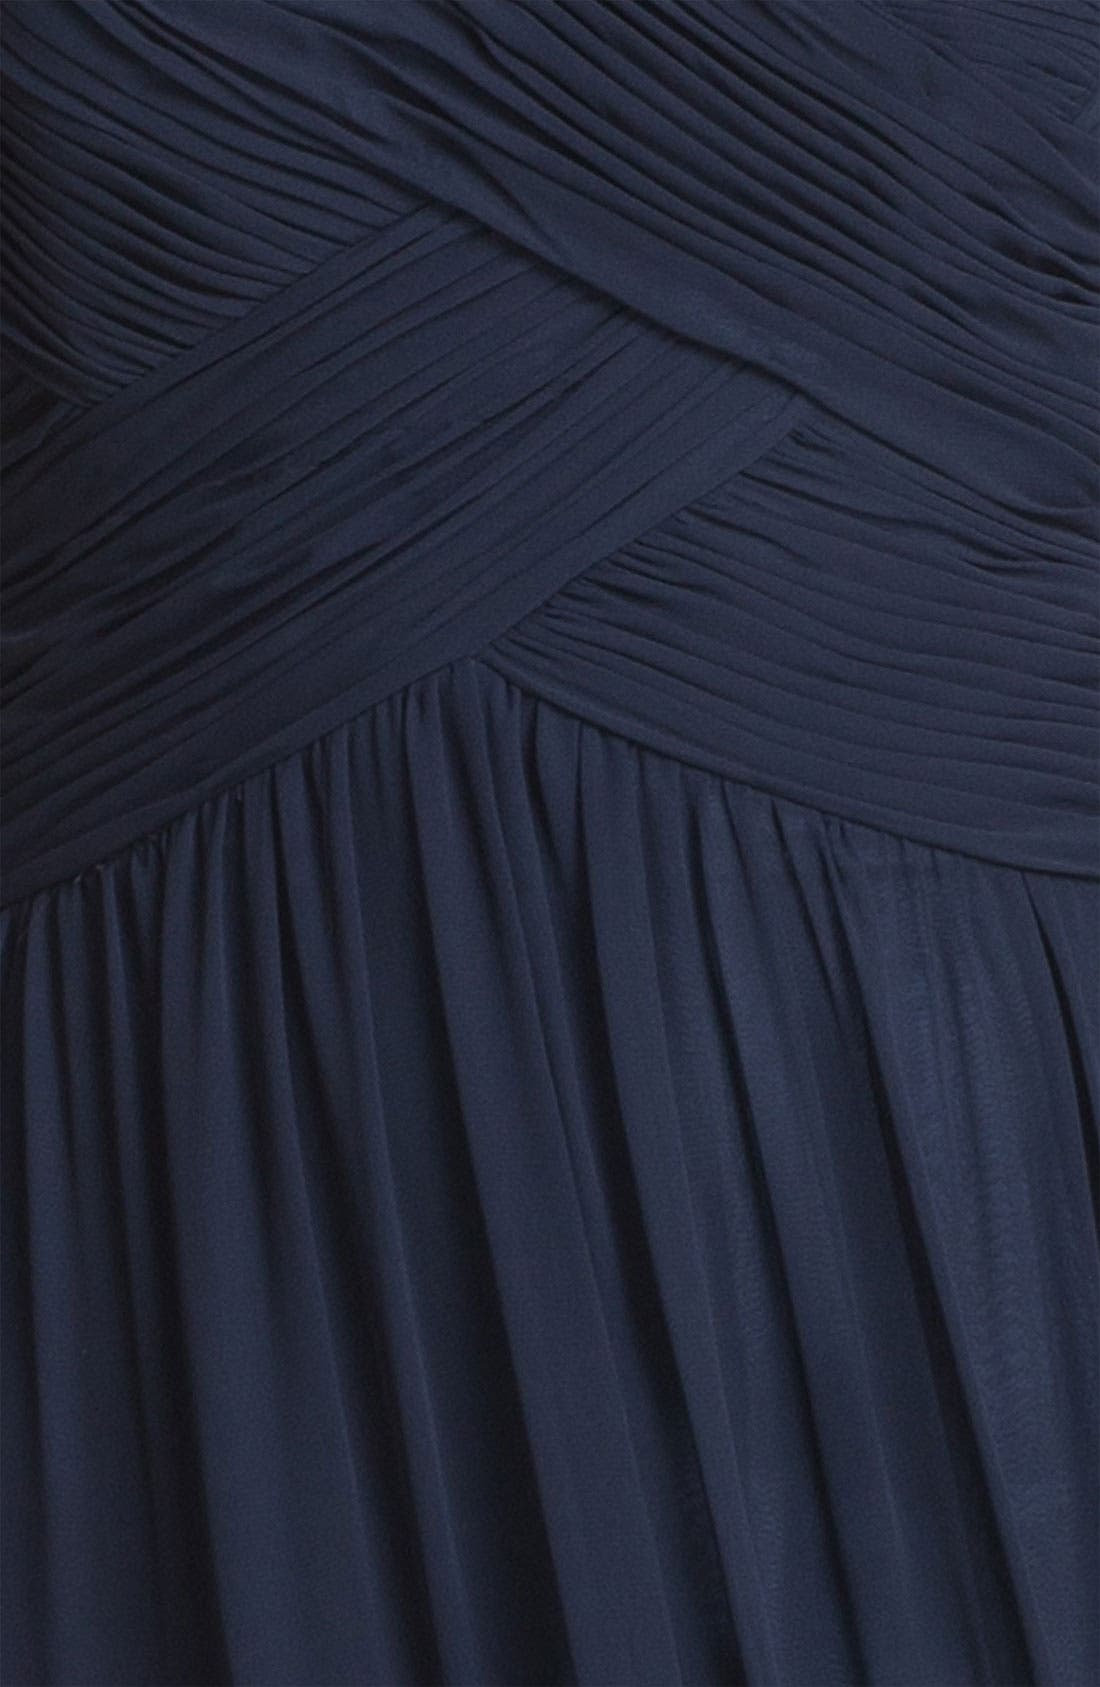 Strapless Ruched Chiffon Gown,                             Alternate thumbnail 22, color,